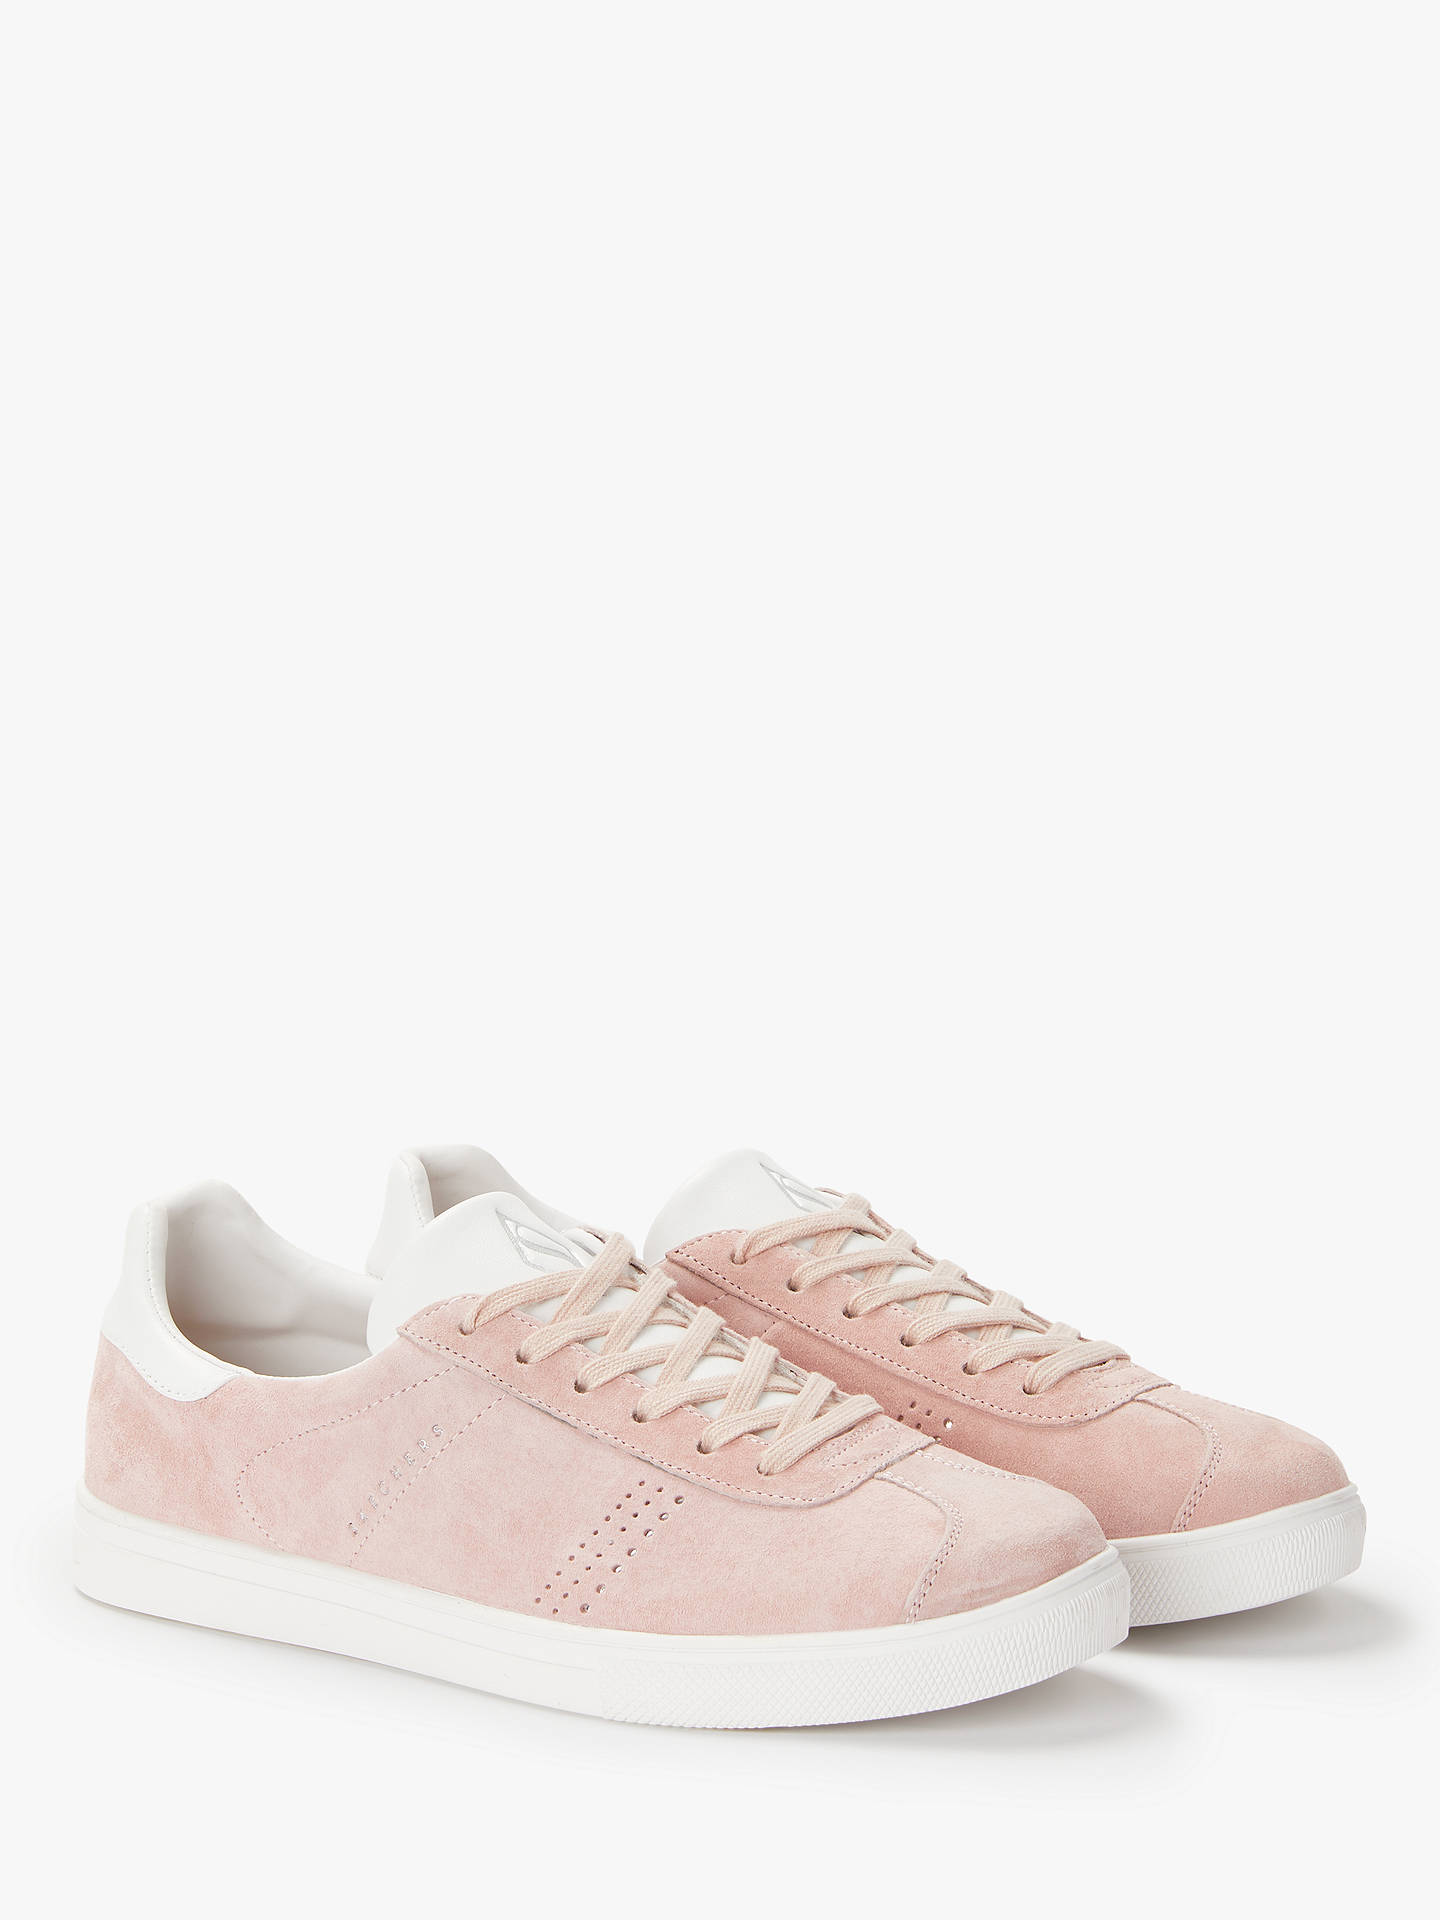 Buy Skechers Moda Perswayed Lace Up Trainers, Pink Suede, 5 Online at johnlewis.com